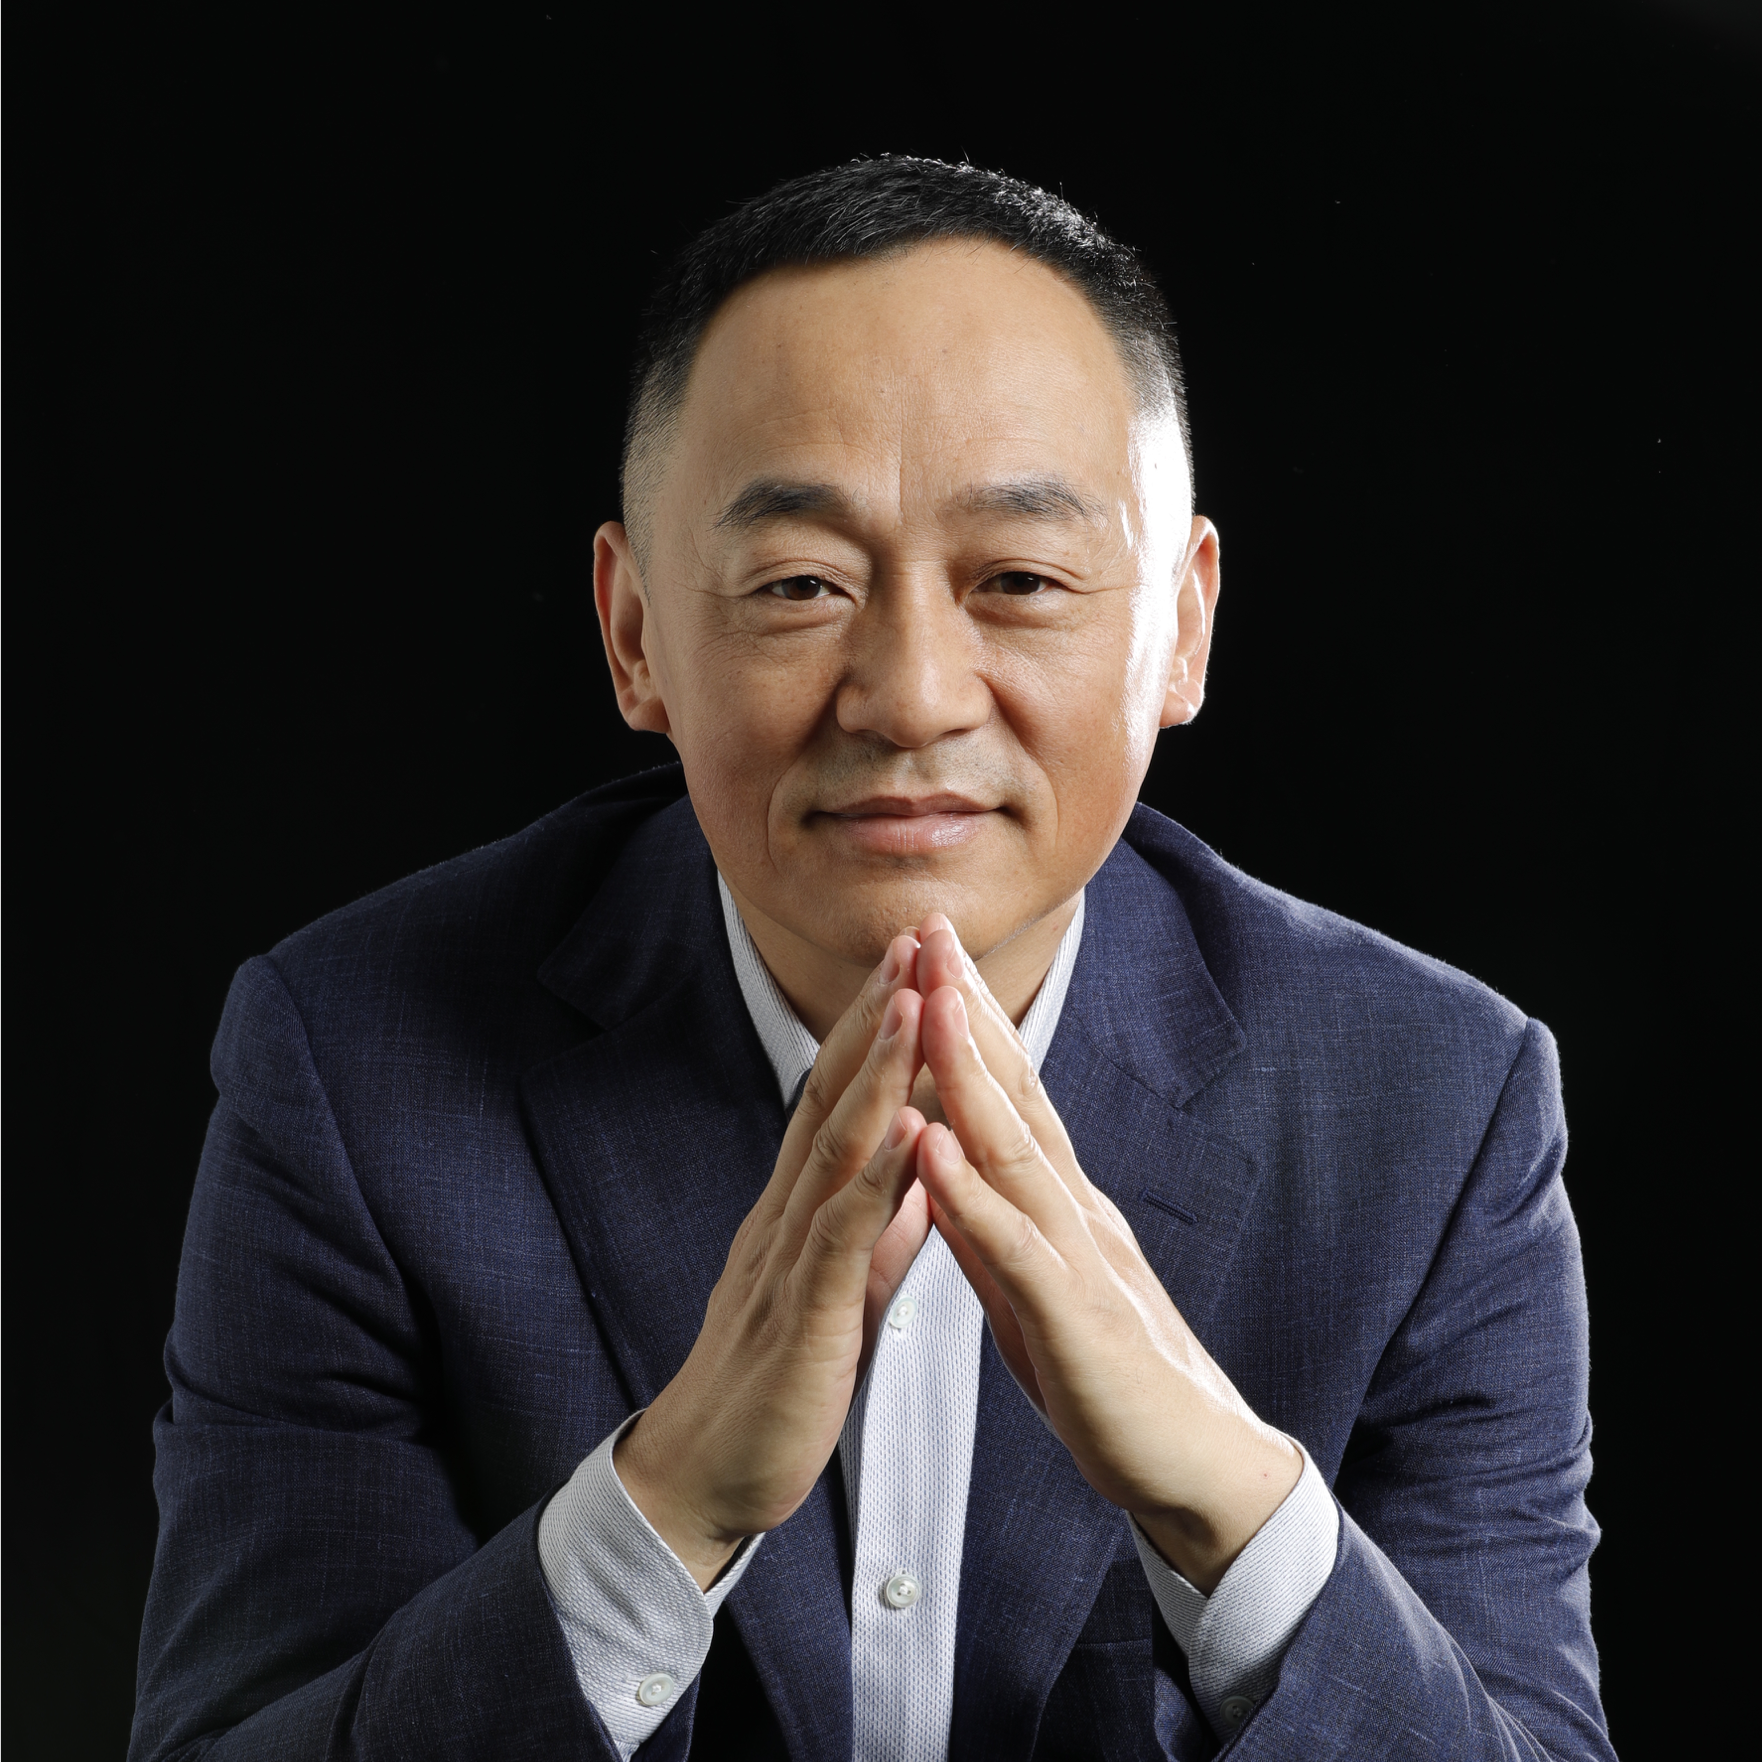 Vice Chairman and Executive Director of China Wanxiang Holdings, Chairman and CEO of Wanxiang Blockchain, 25 years of experience in the securities and asset management industry.